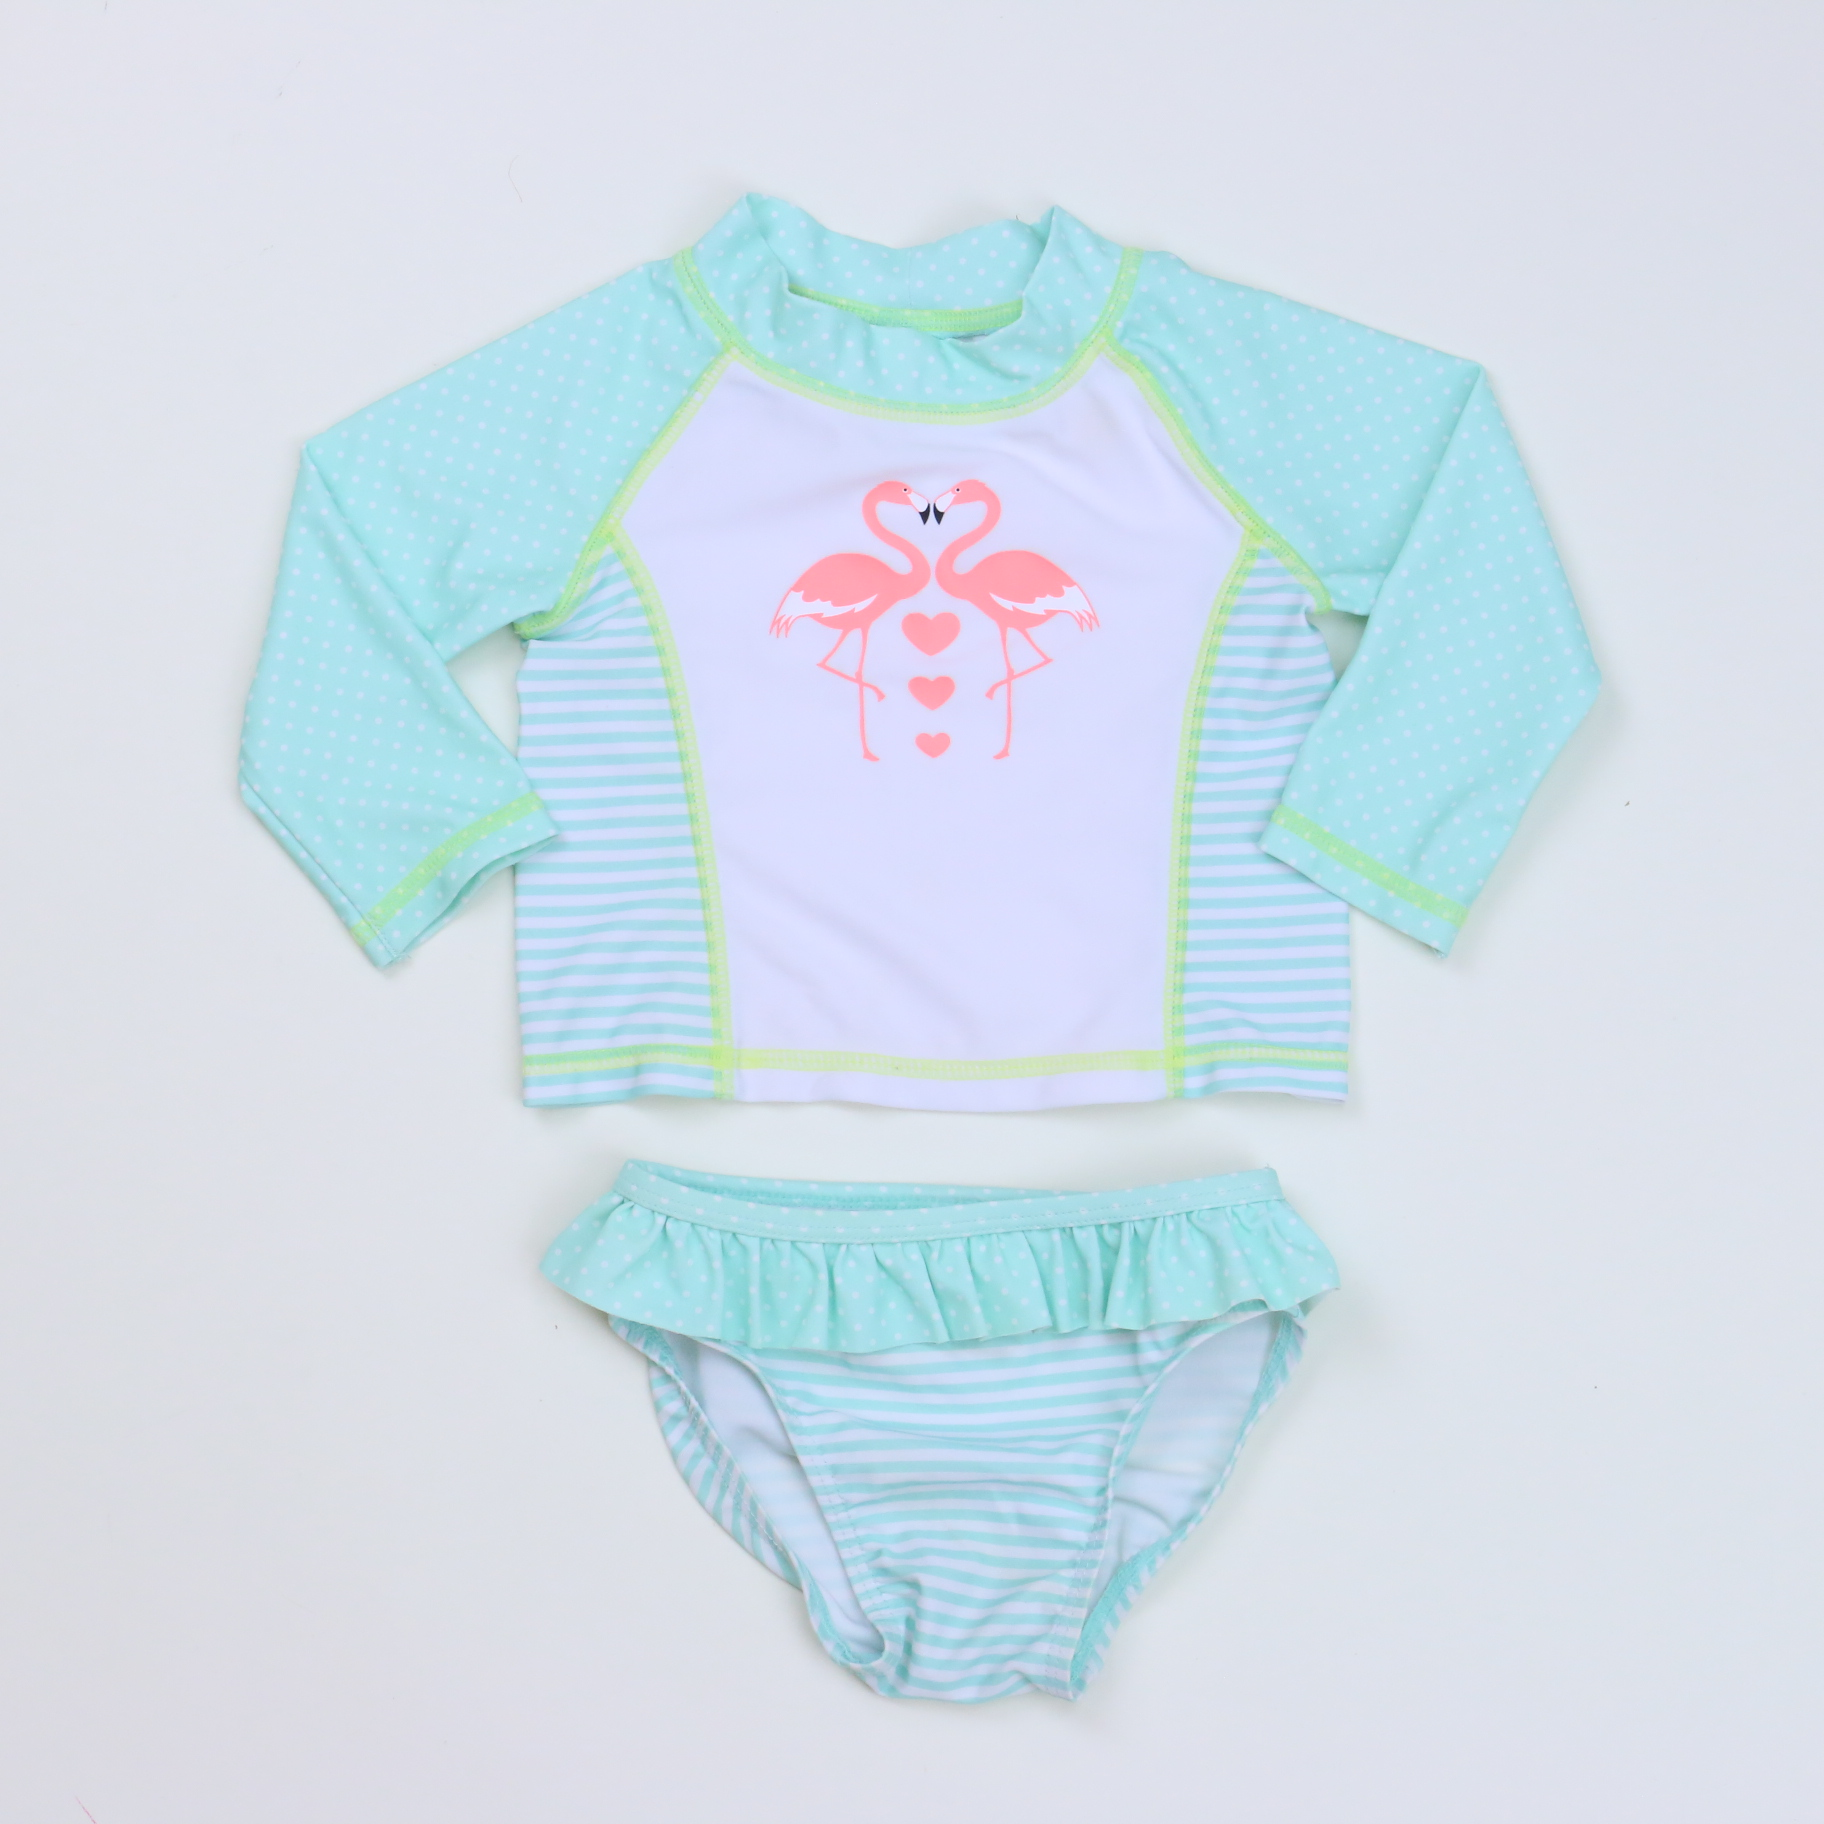 460fbbfdd 2-pieces 2-piece Swimsuit size: 6-9 Months - The Swoondle Society